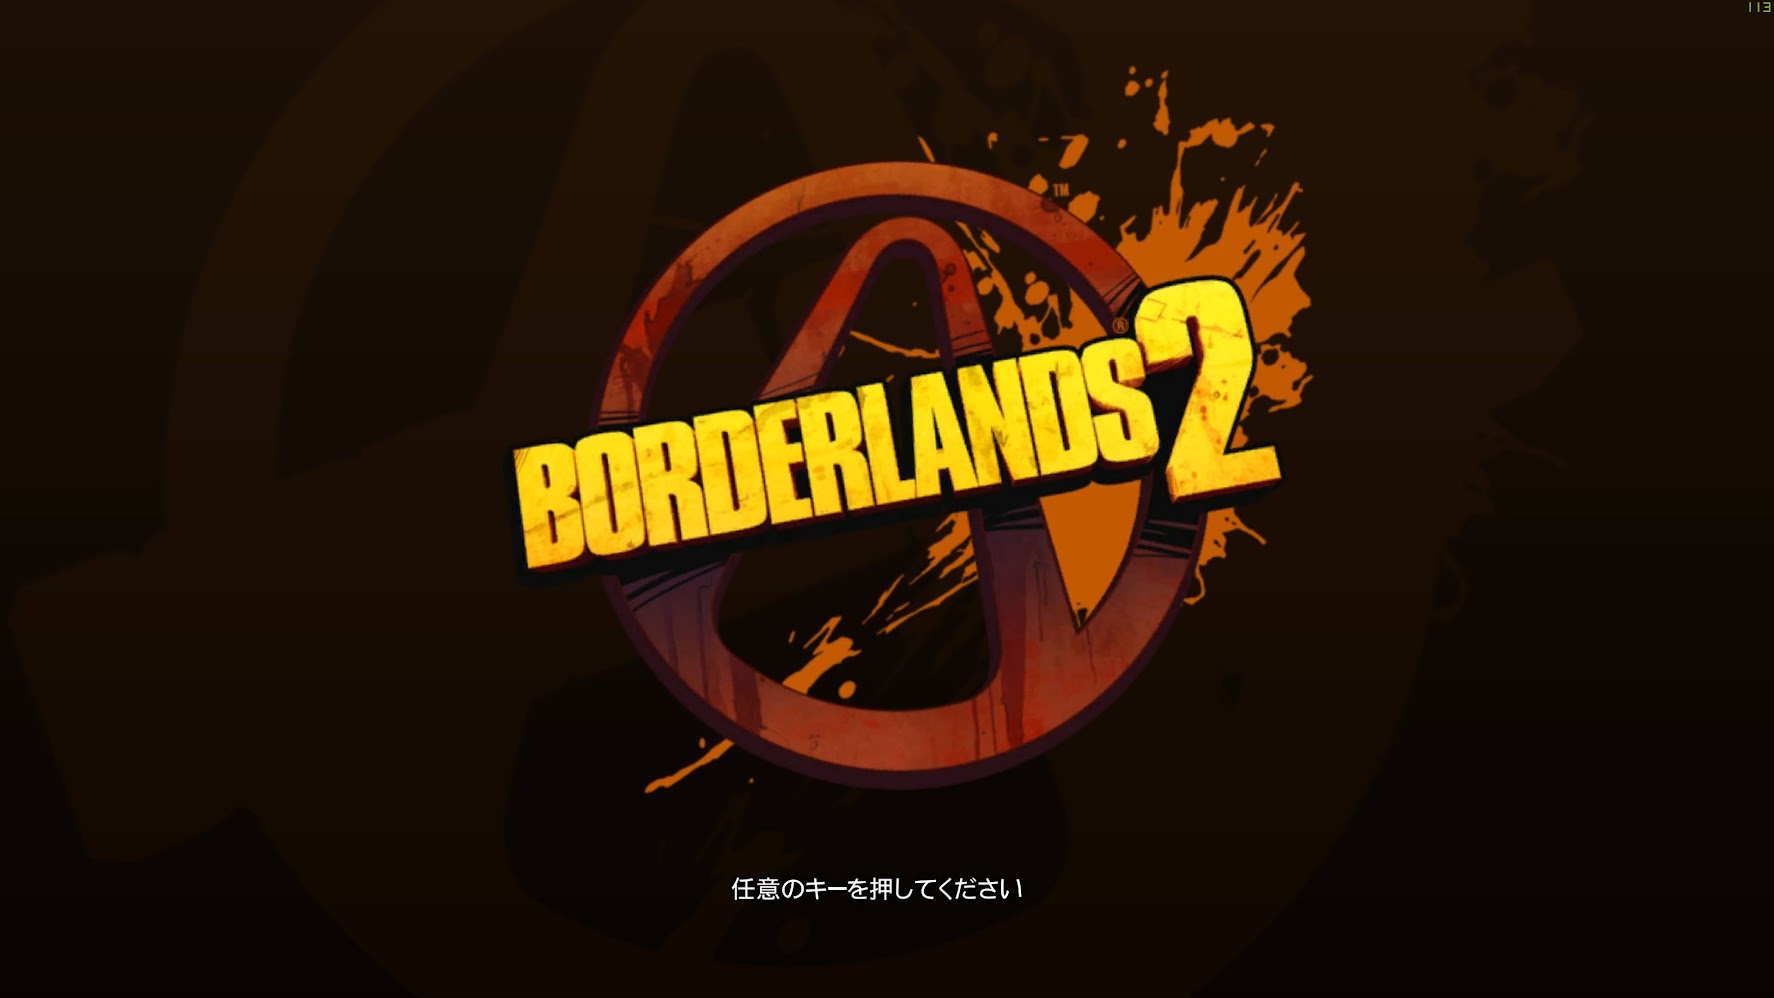 Steam − Borderlands 2 その2 Sanctuaryへの道 まで